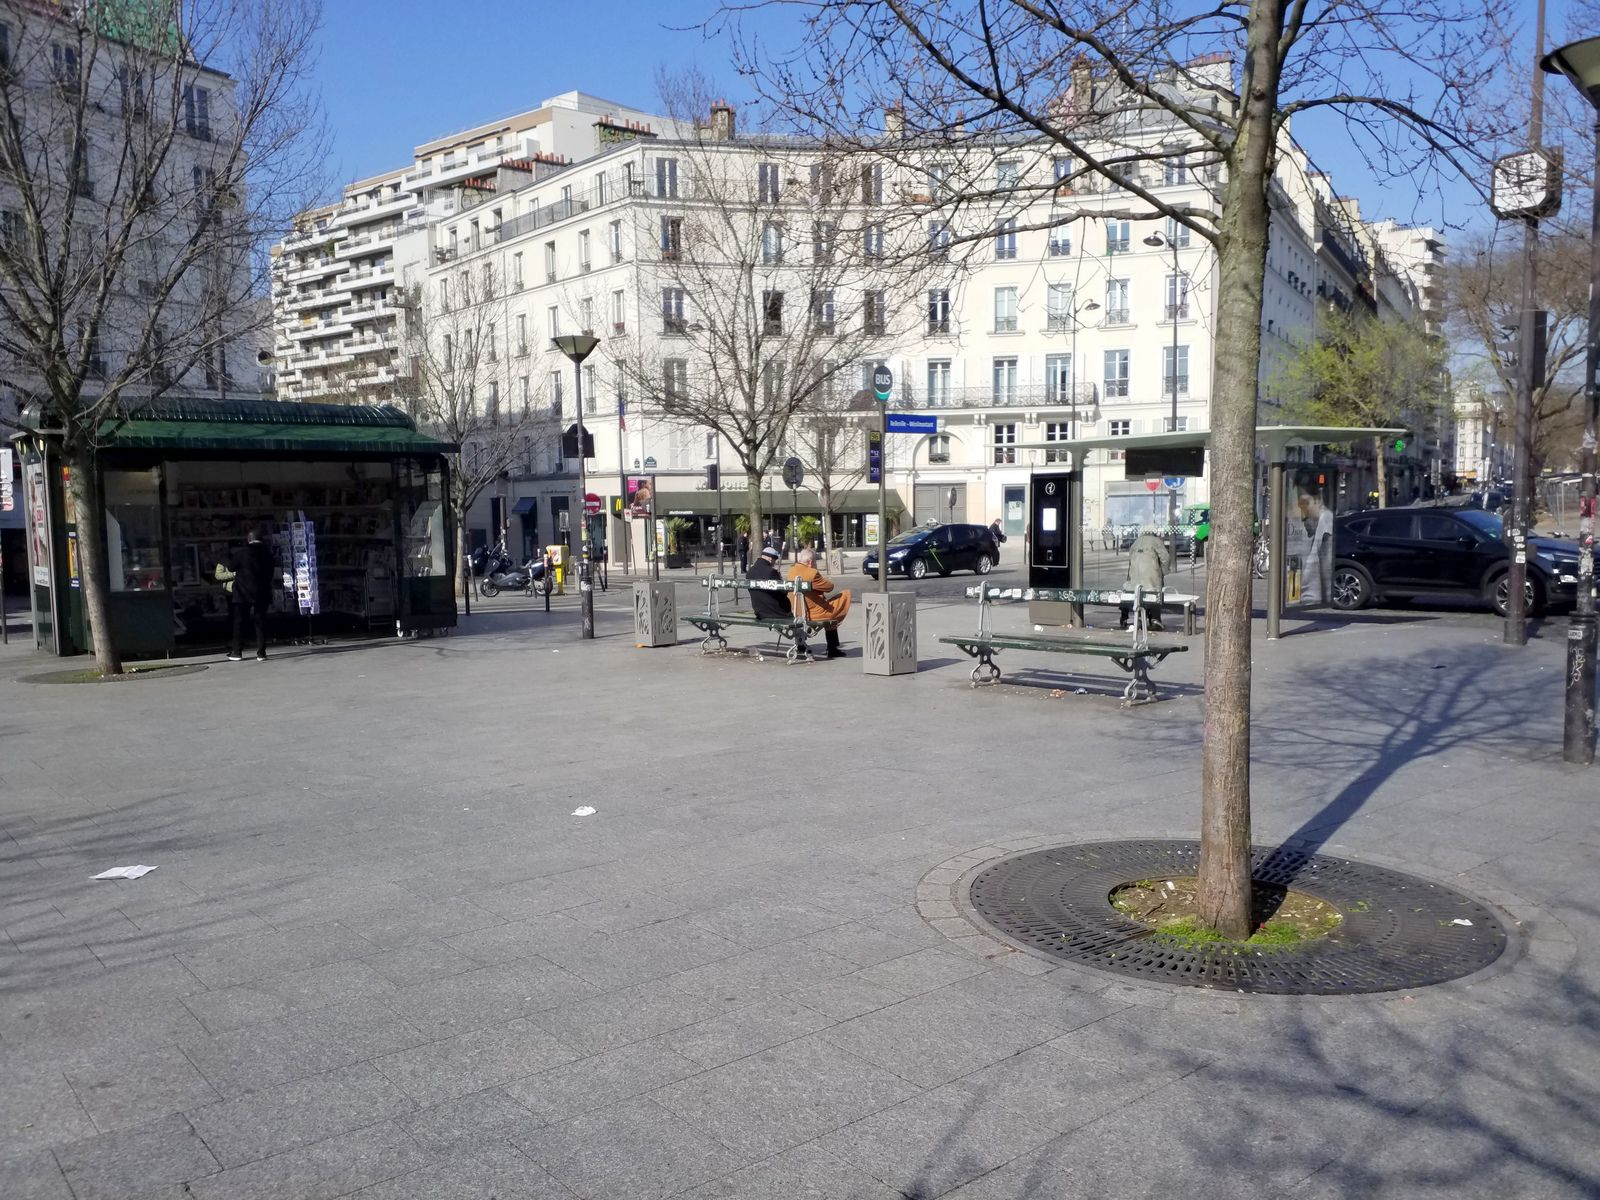 Place Jean Ferrat, Paris 11-20, 19/03/20